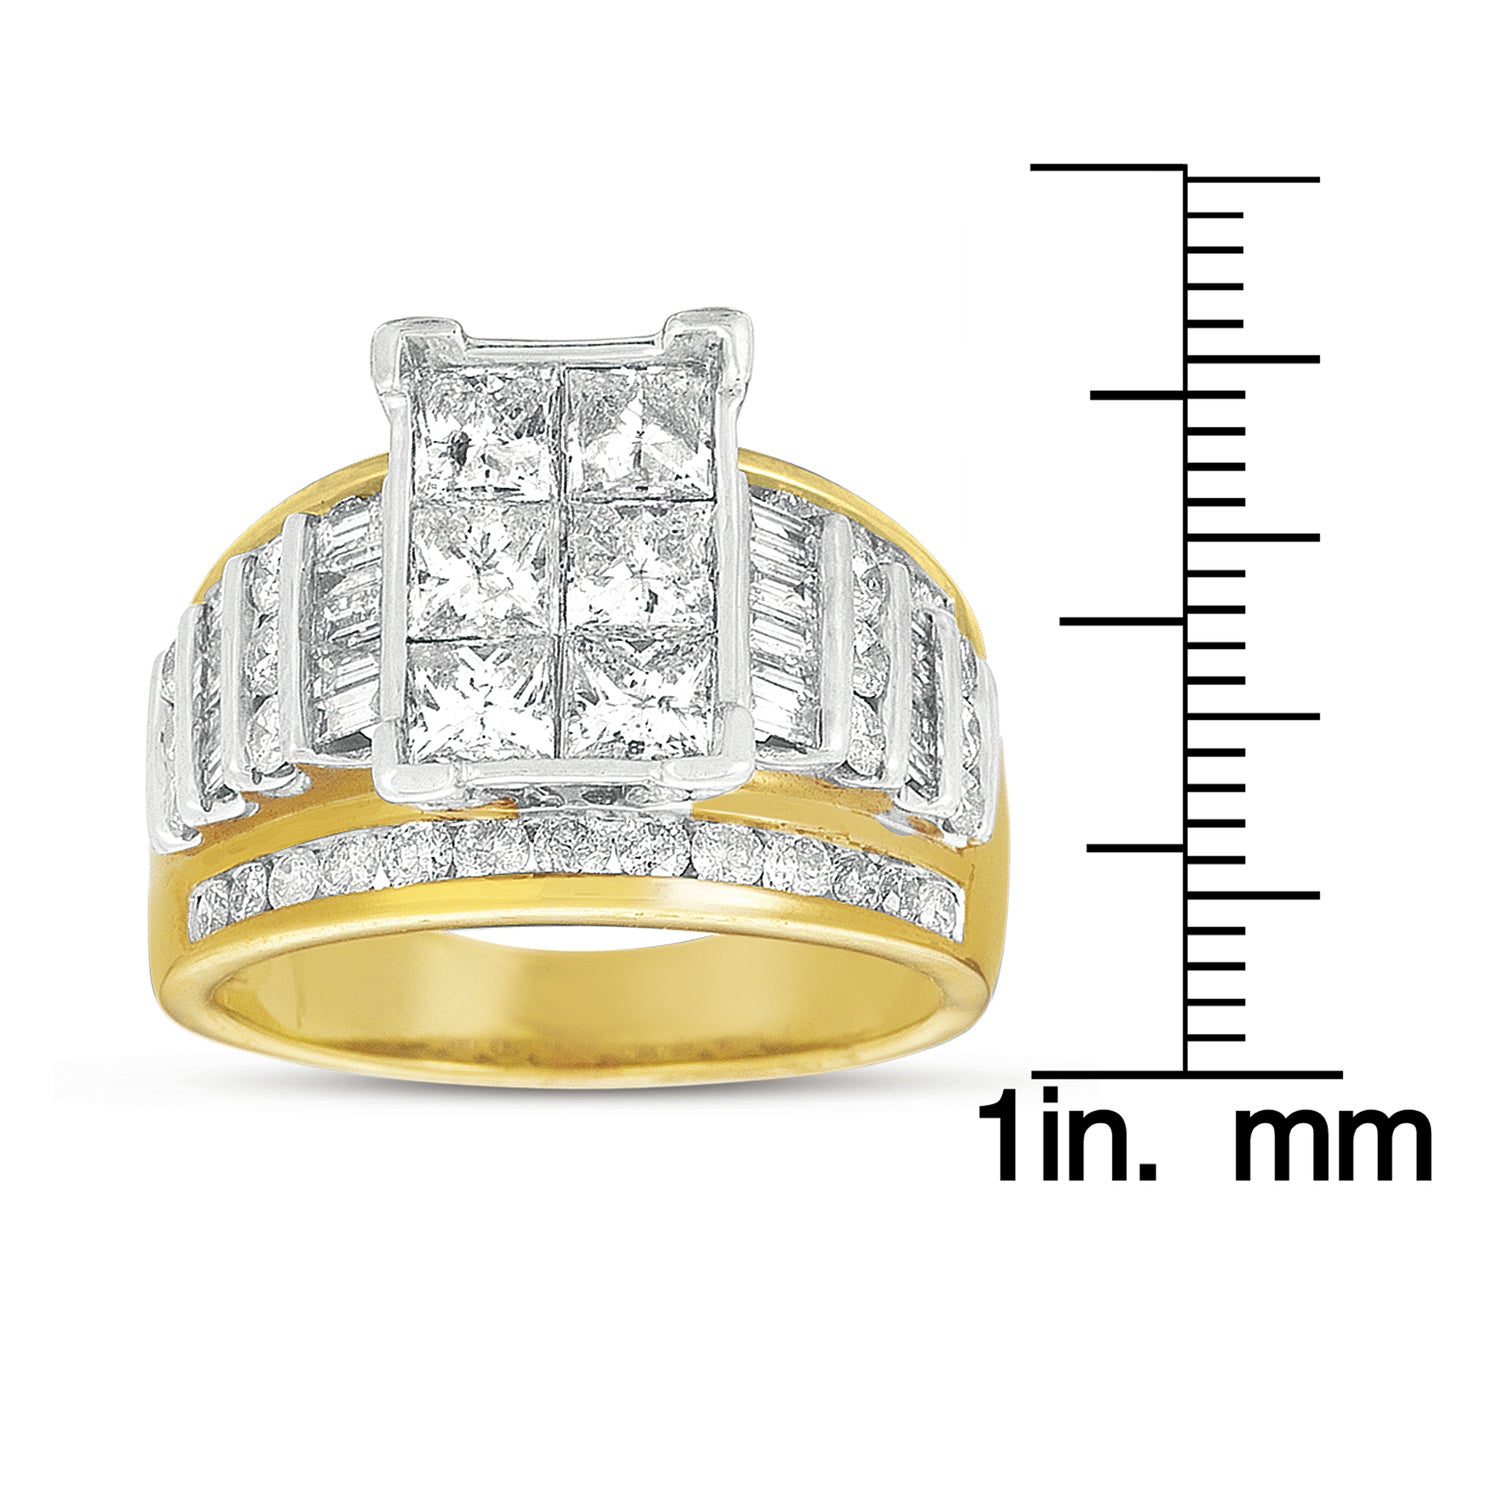 14k Gold 3ct TDW Princess Cut Pave Diamond Ring (G-H, I1)